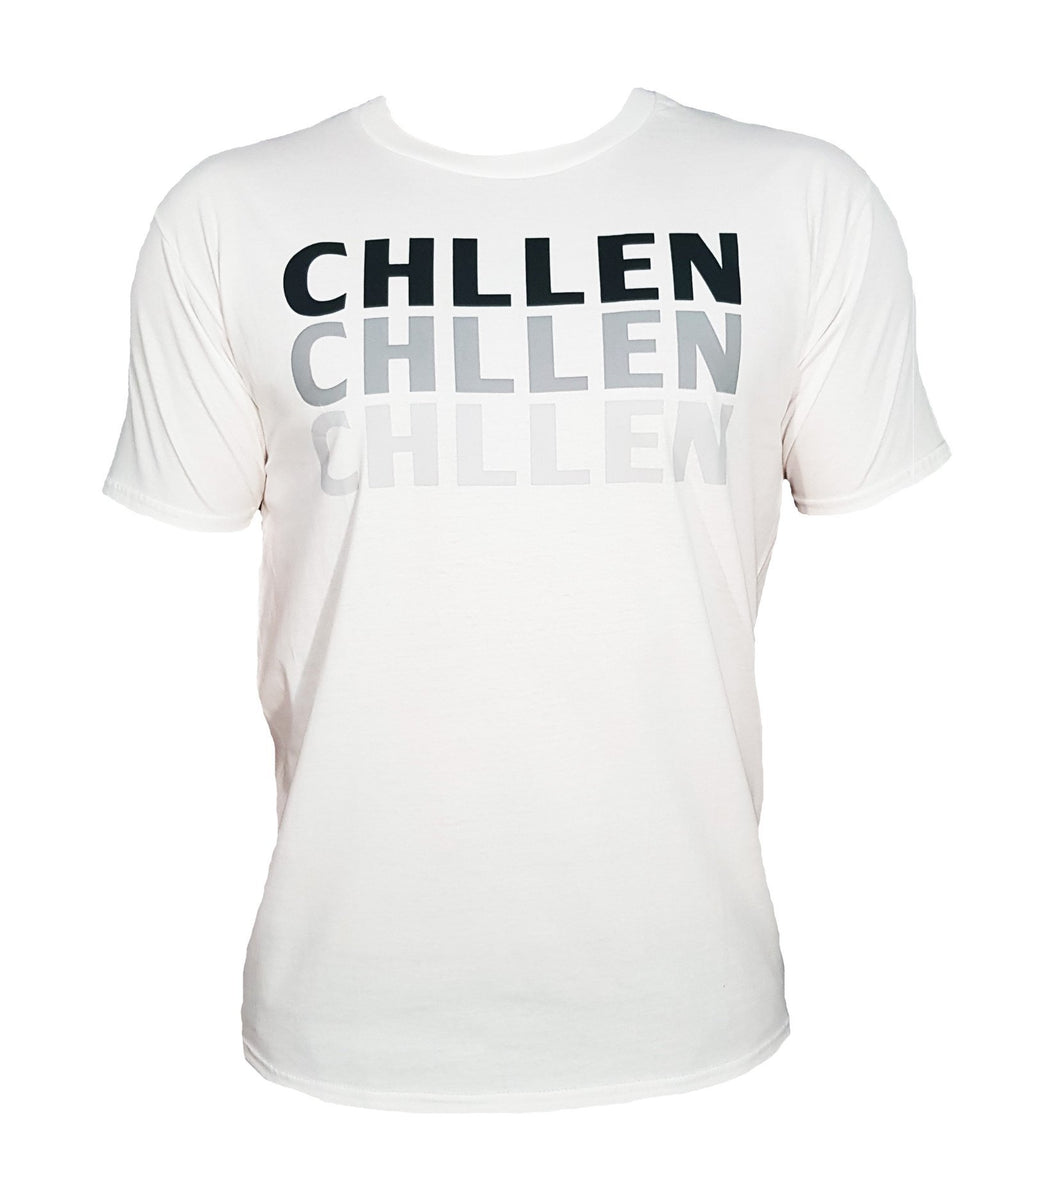 chillen chllen lifestyle wear kids casual white-grey shirt t-shirt tee